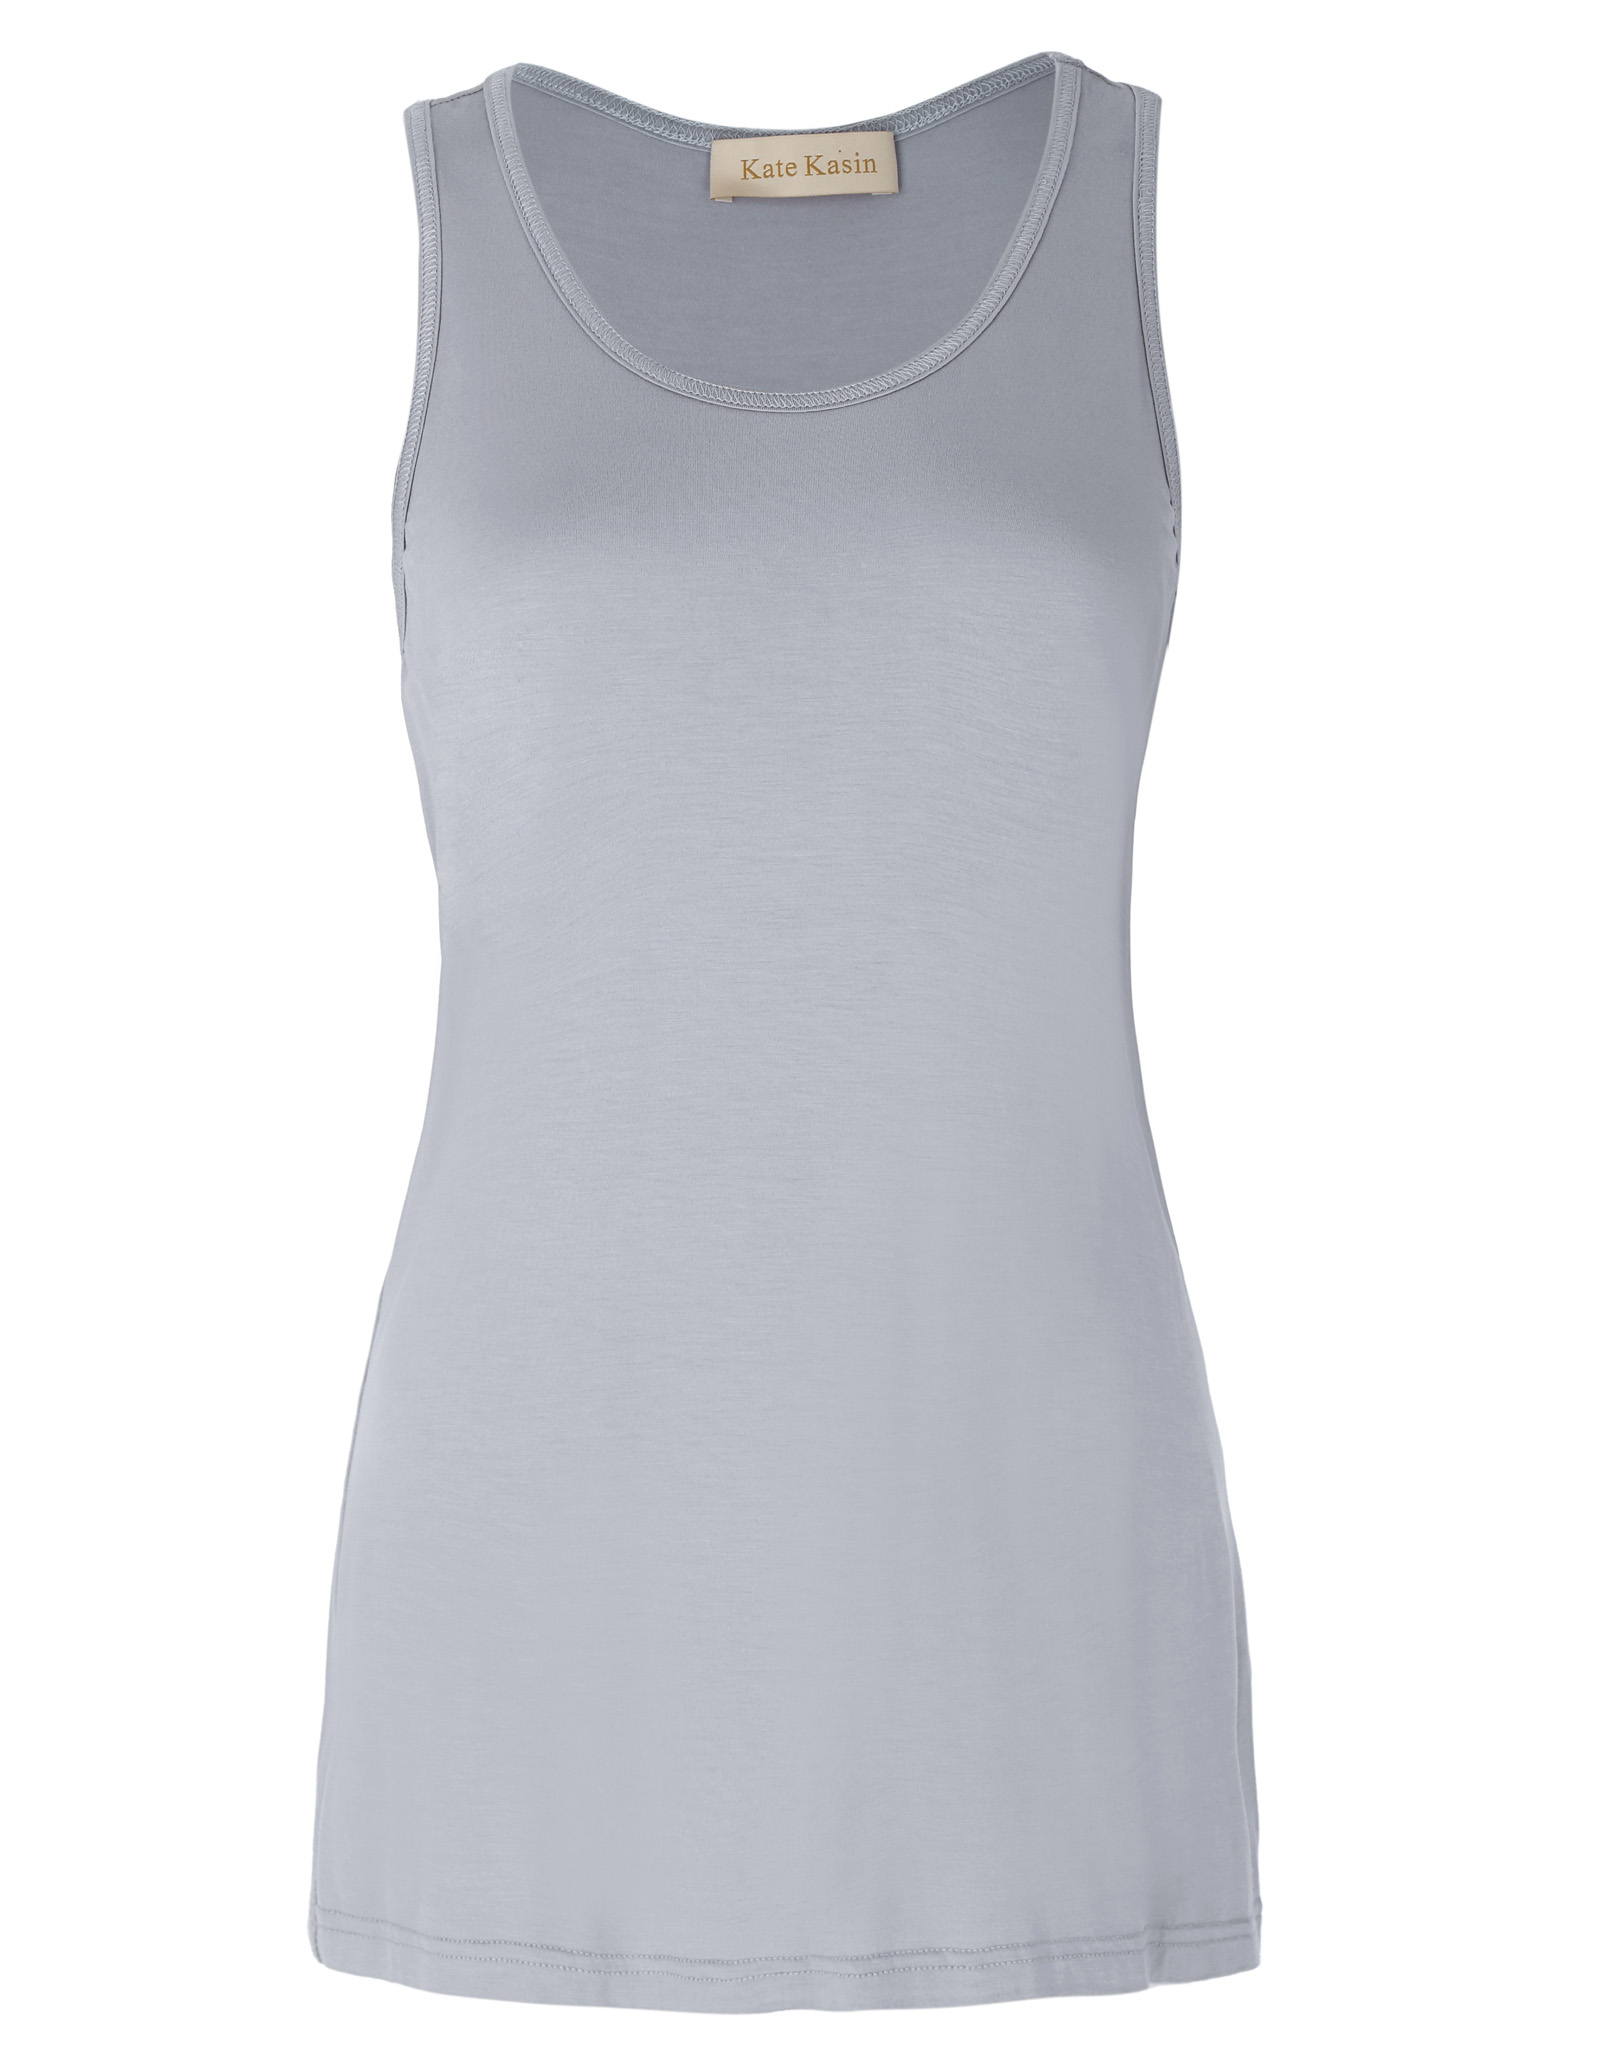 grey black slim tank top Women Everyday Soft & Comfortable Cotton Tops rock sexy bodycon ...